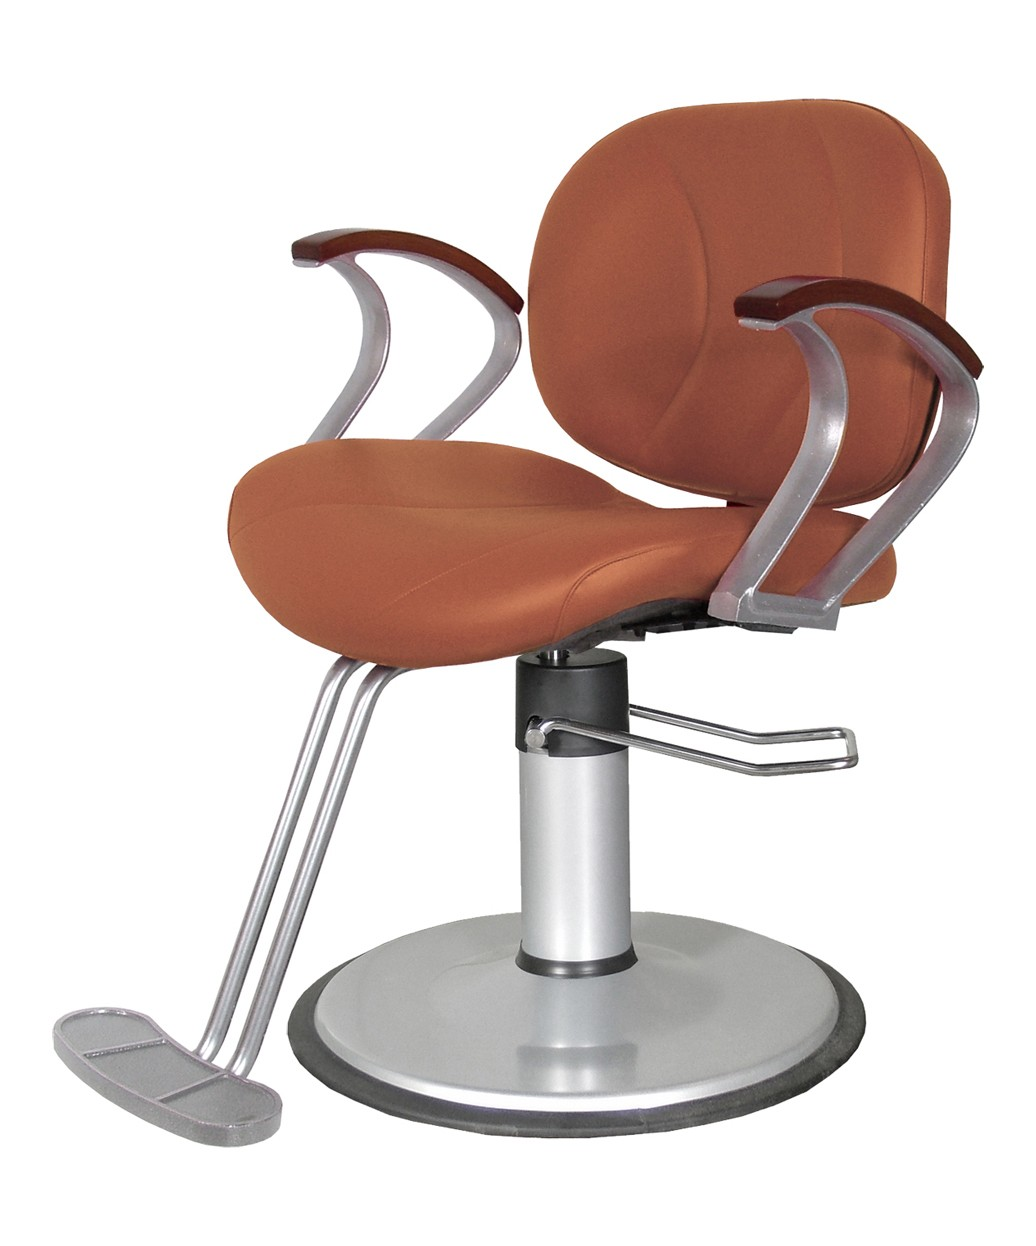 5500V Belize Styling Chair with Enviro Base